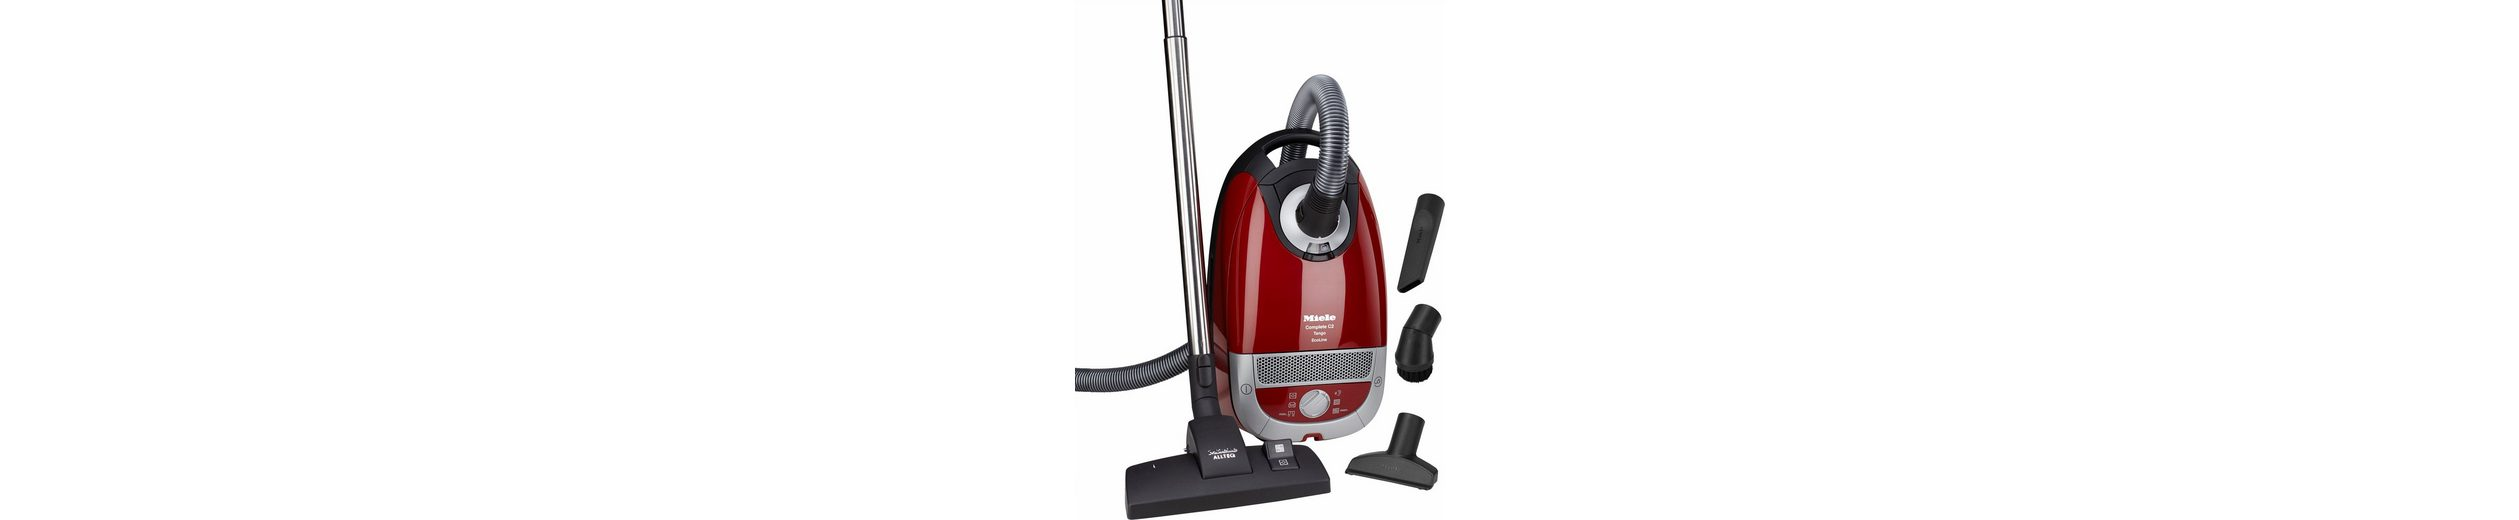 Miele Staubsauger Complete C2 Tango, A, Mangorot